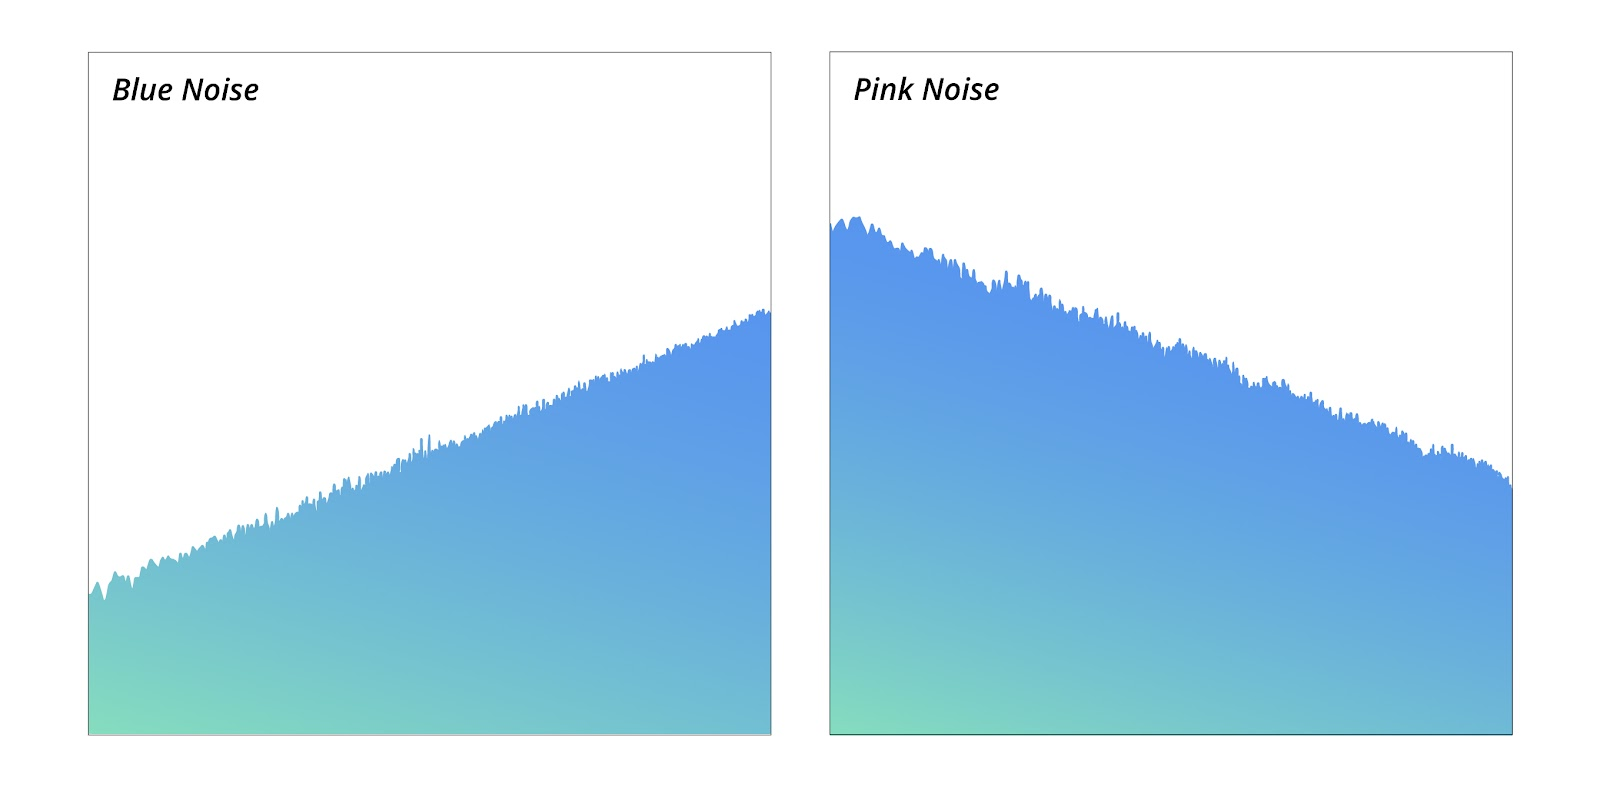 blue noise and pink noise image in comparison